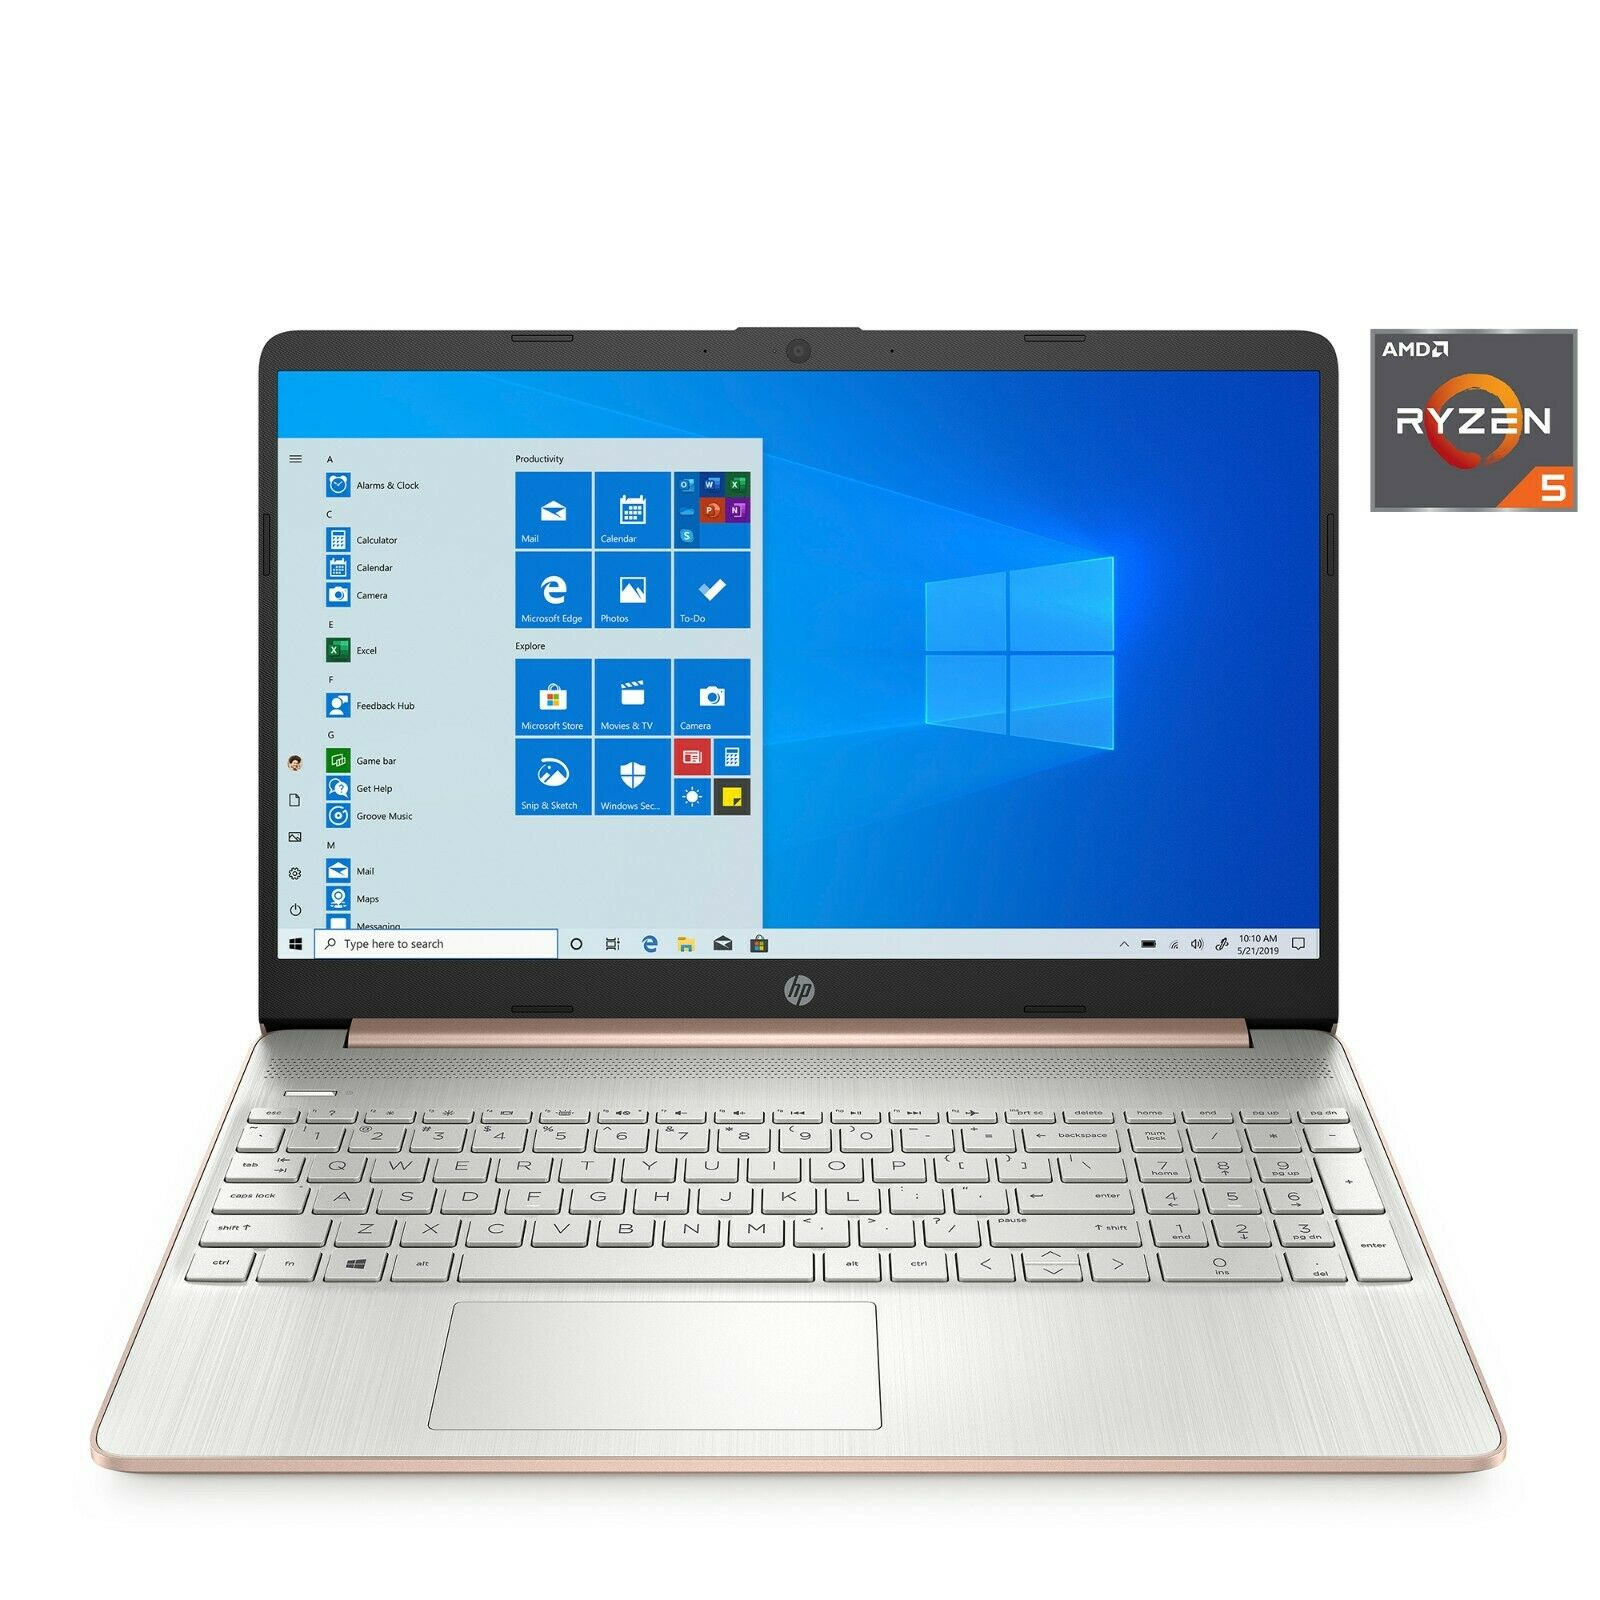 "Laptop Windows - NEW HP Laptop 15.6"" 256GB SSD 3.7GHz Max 8GB RAM AMD Ryzen 5 Windows10 Rose Gold"